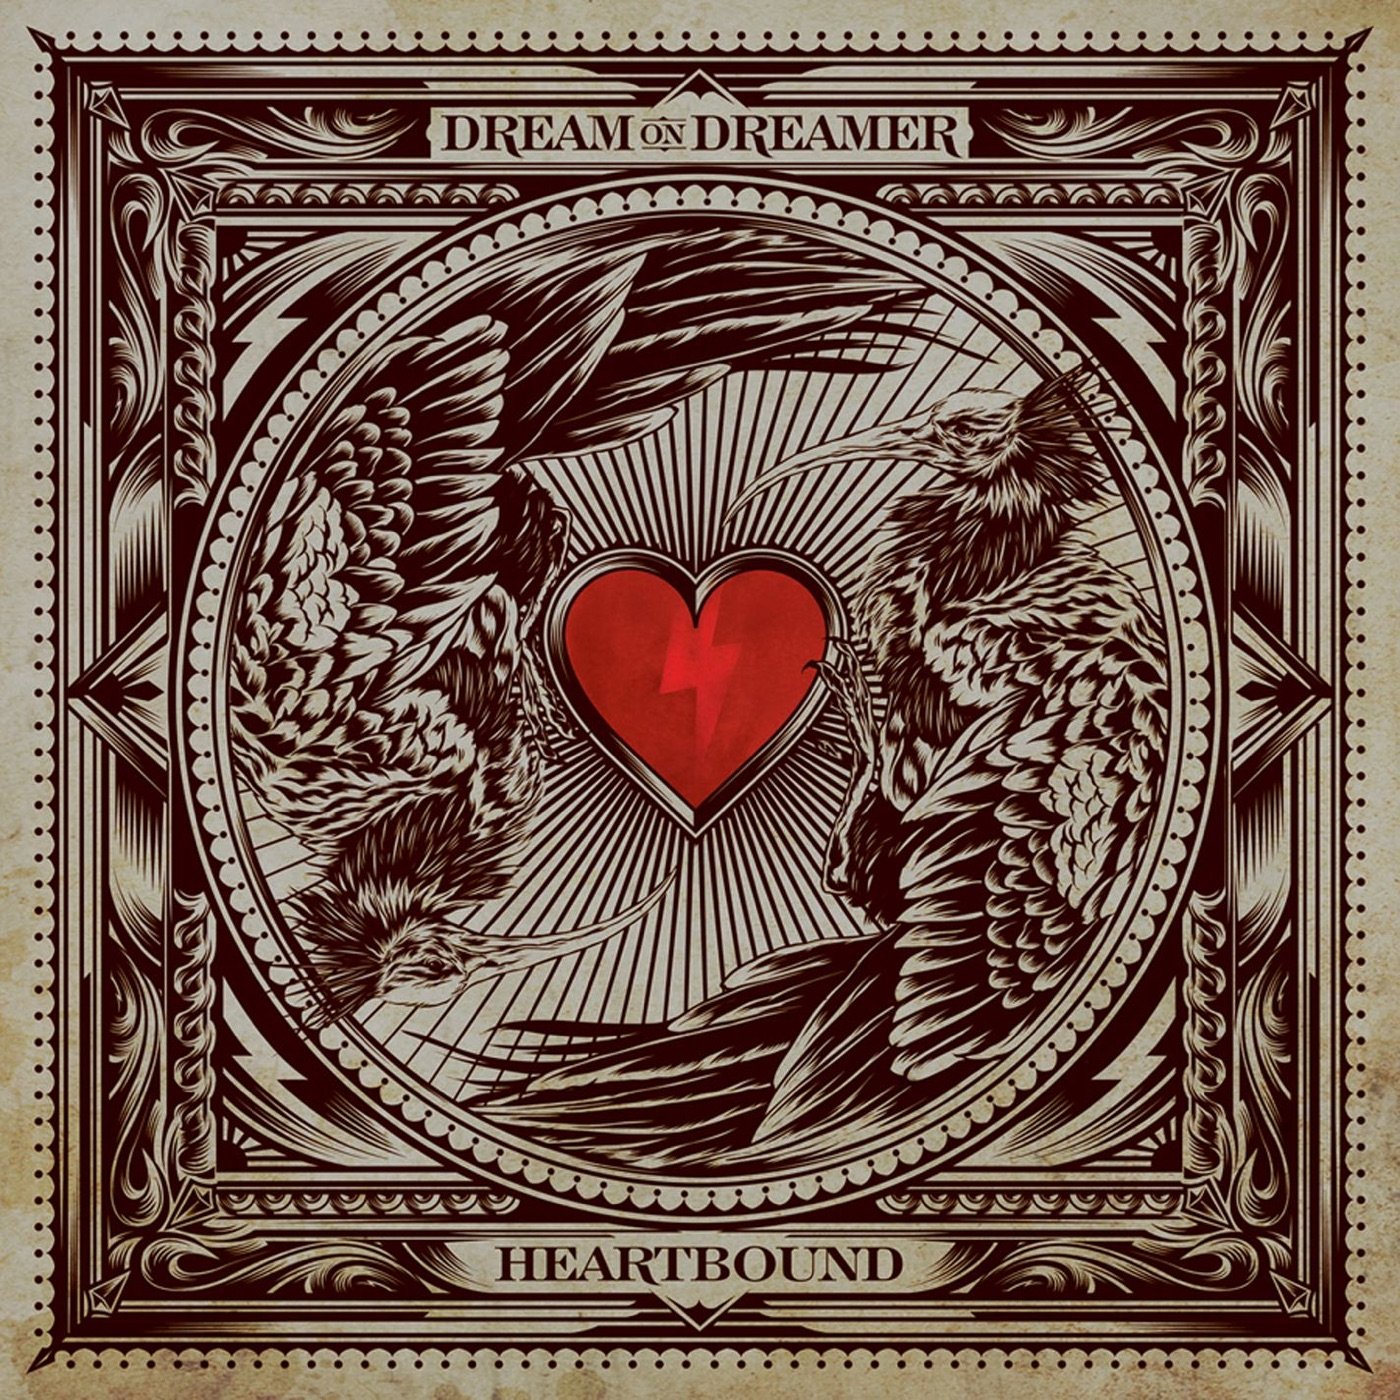 Dream On Dreamer - Heartbound (2011)